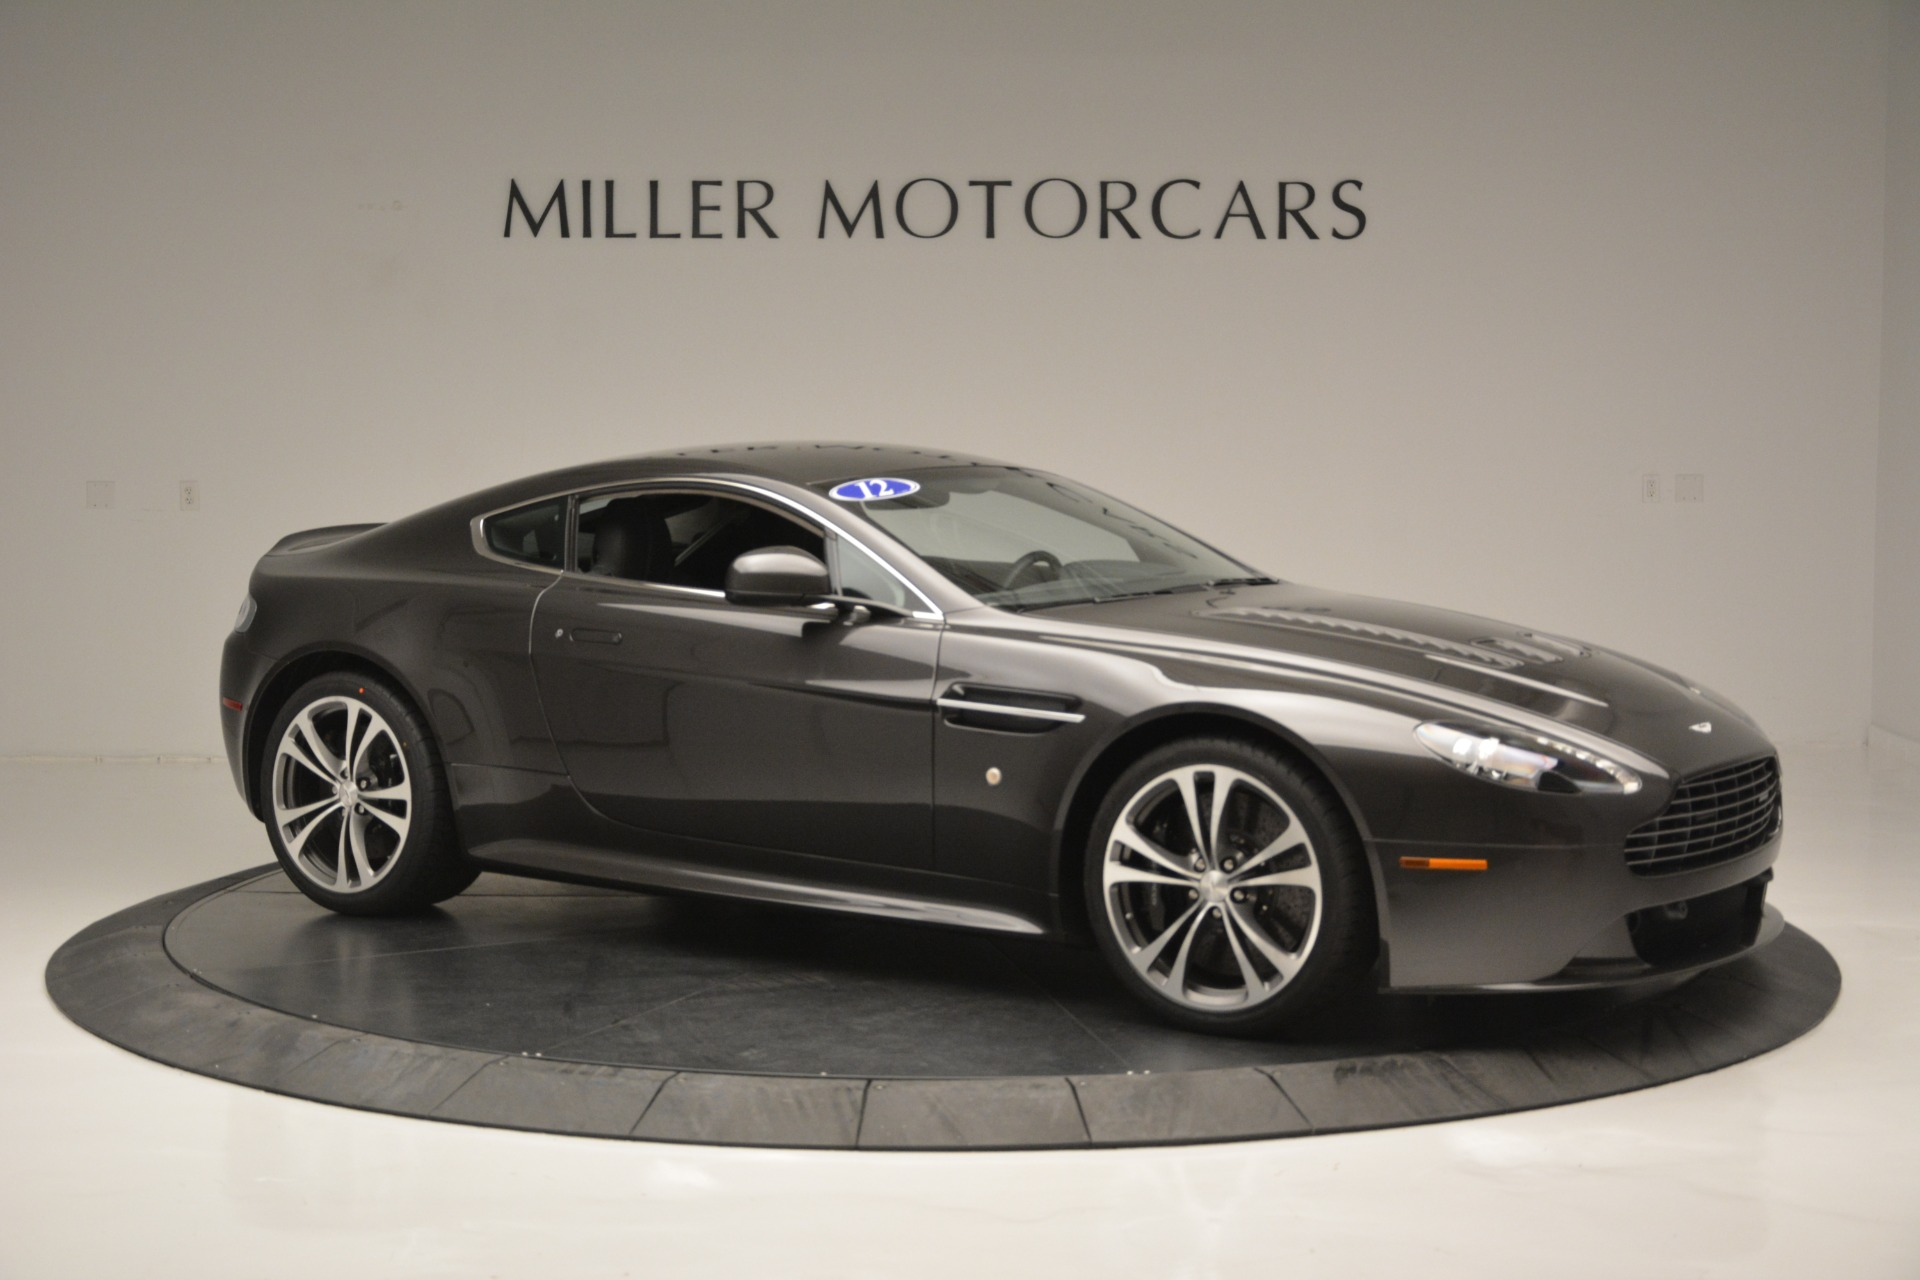 Used 2012 Aston Martin V12 Vantage Coupe For Sale In Westport, CT 2544_p10